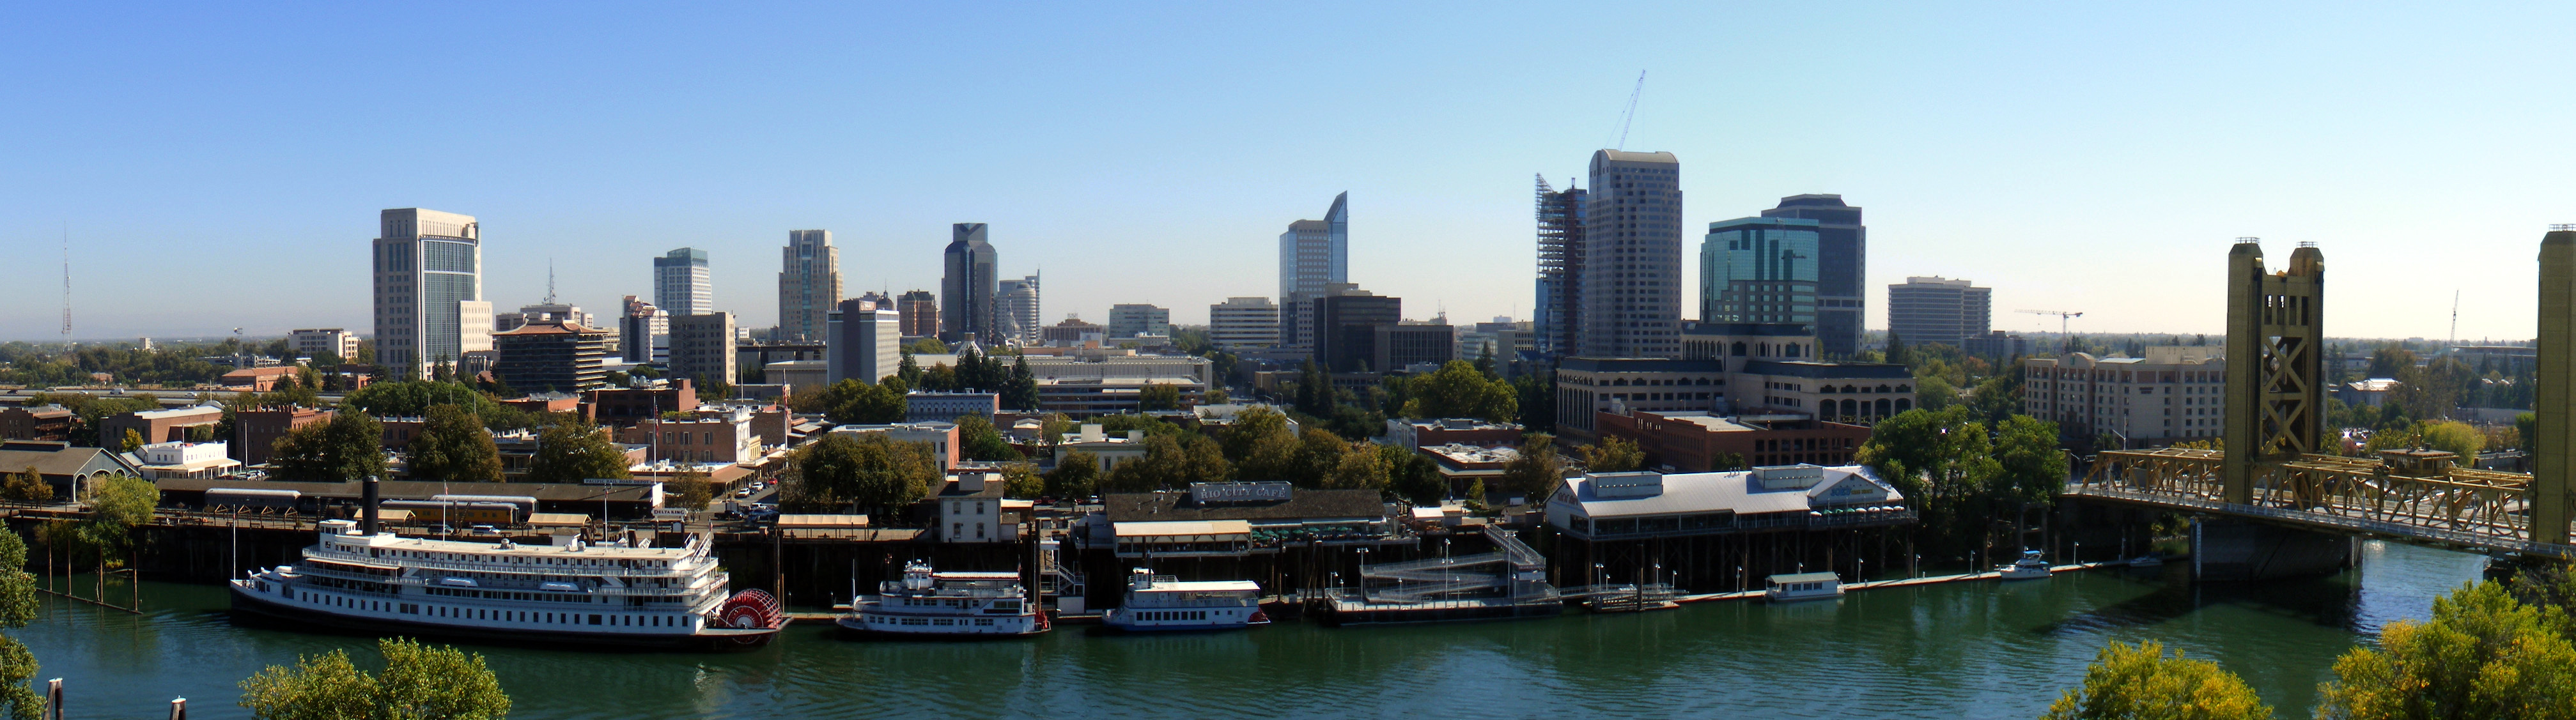 There are no 5G coverage maps of Sacramento, so here's a picture of the city's skyline instead.